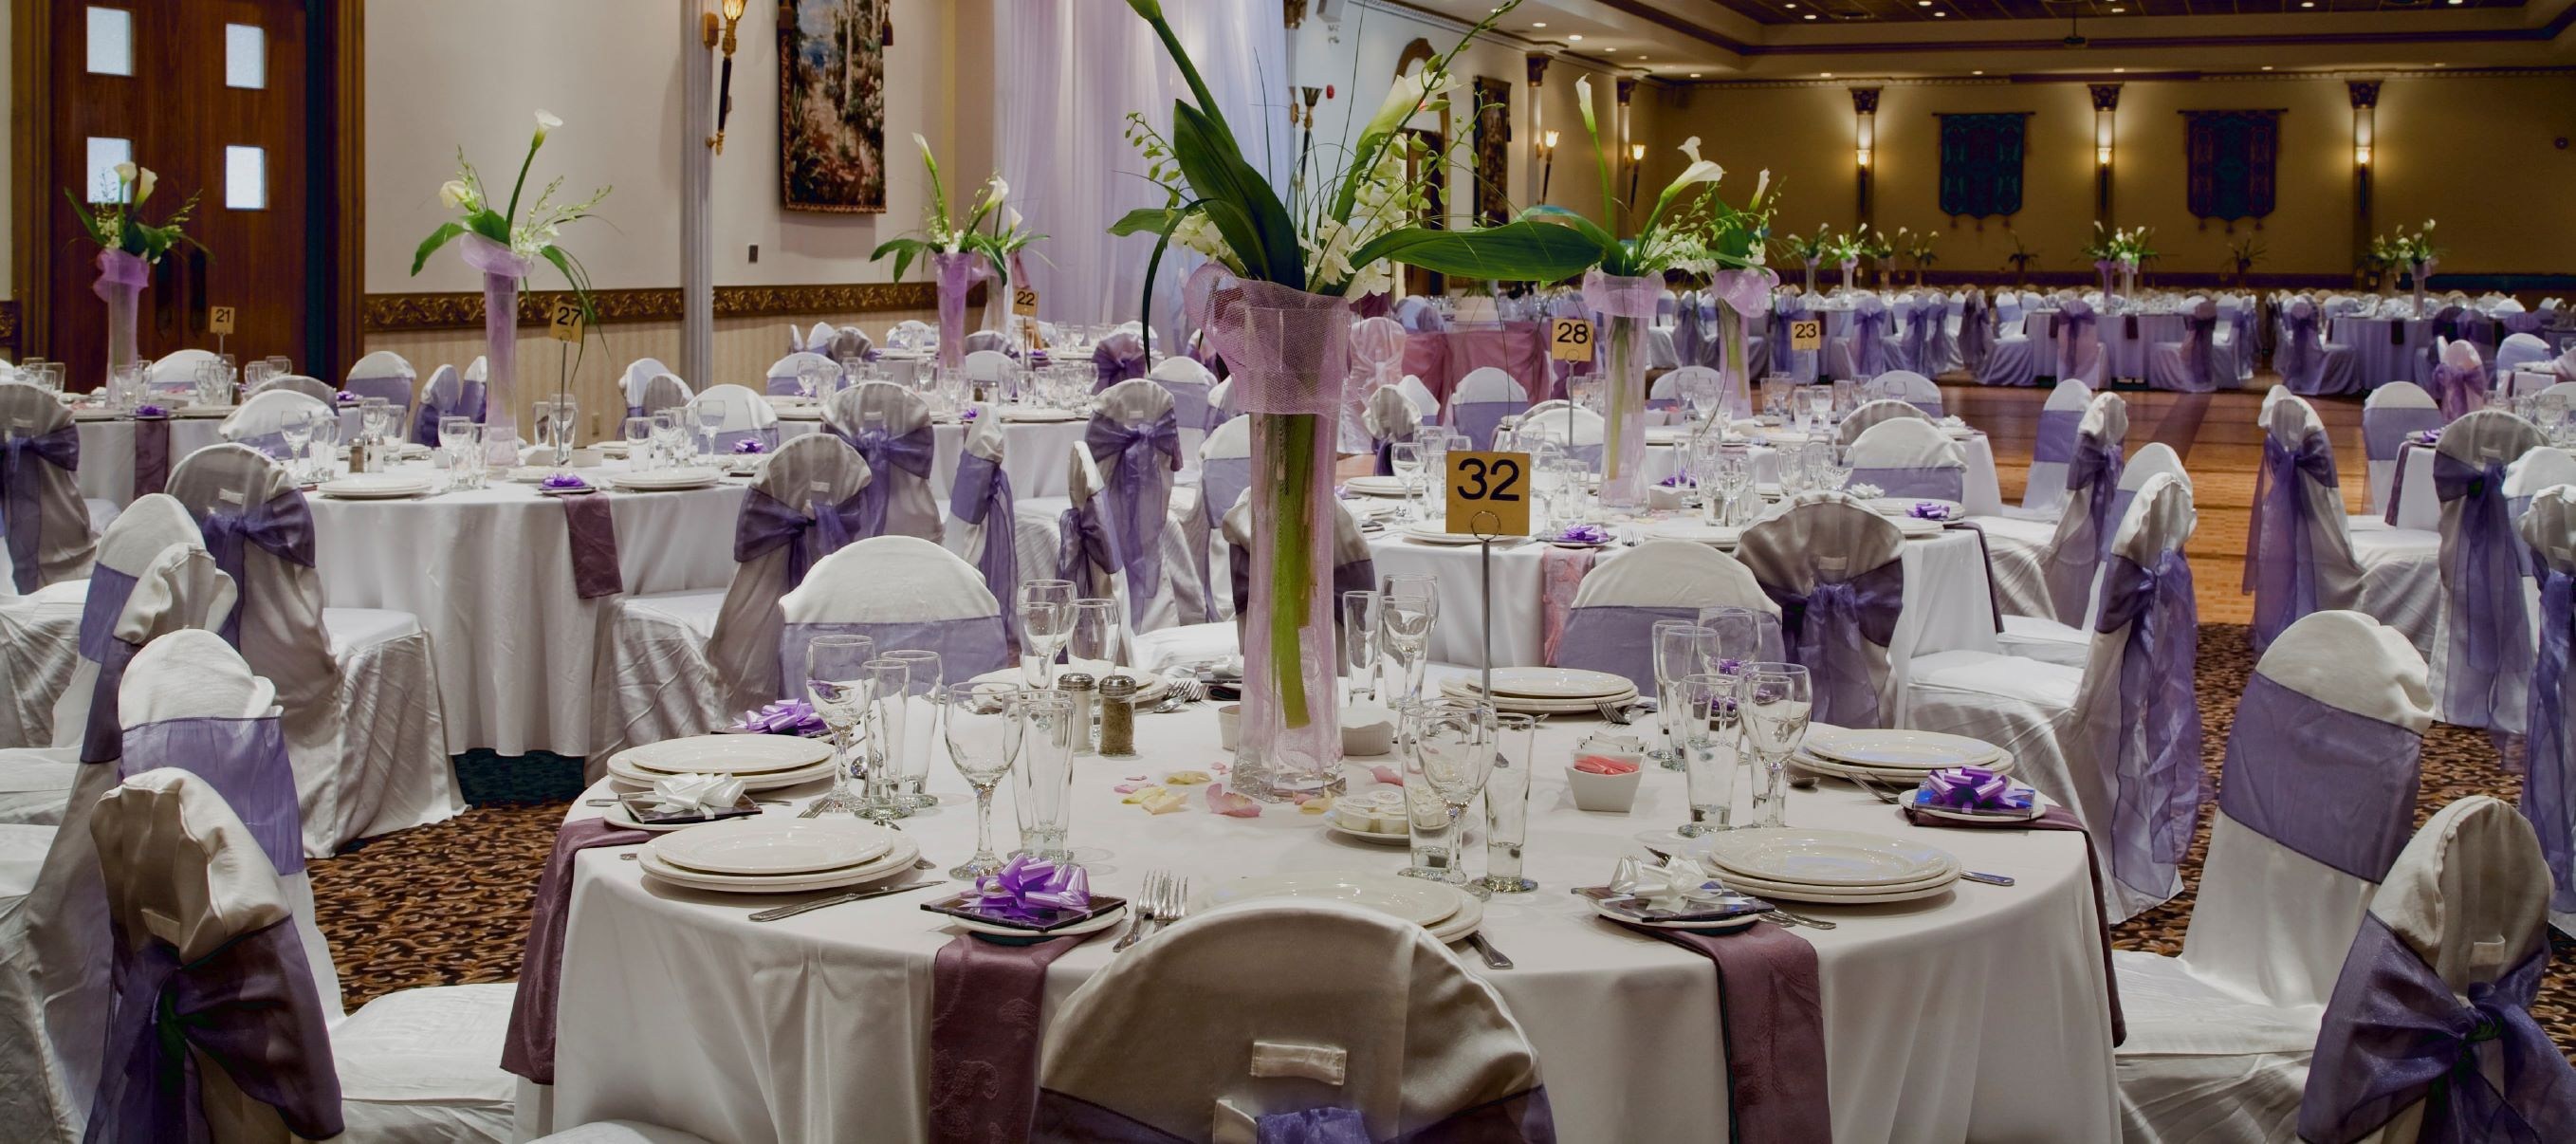 Weddings in manchester balloon decoration chair cover hire weddings in manchester balloon decoration chair cover hire wedding decoration in manchester junglespirit Images